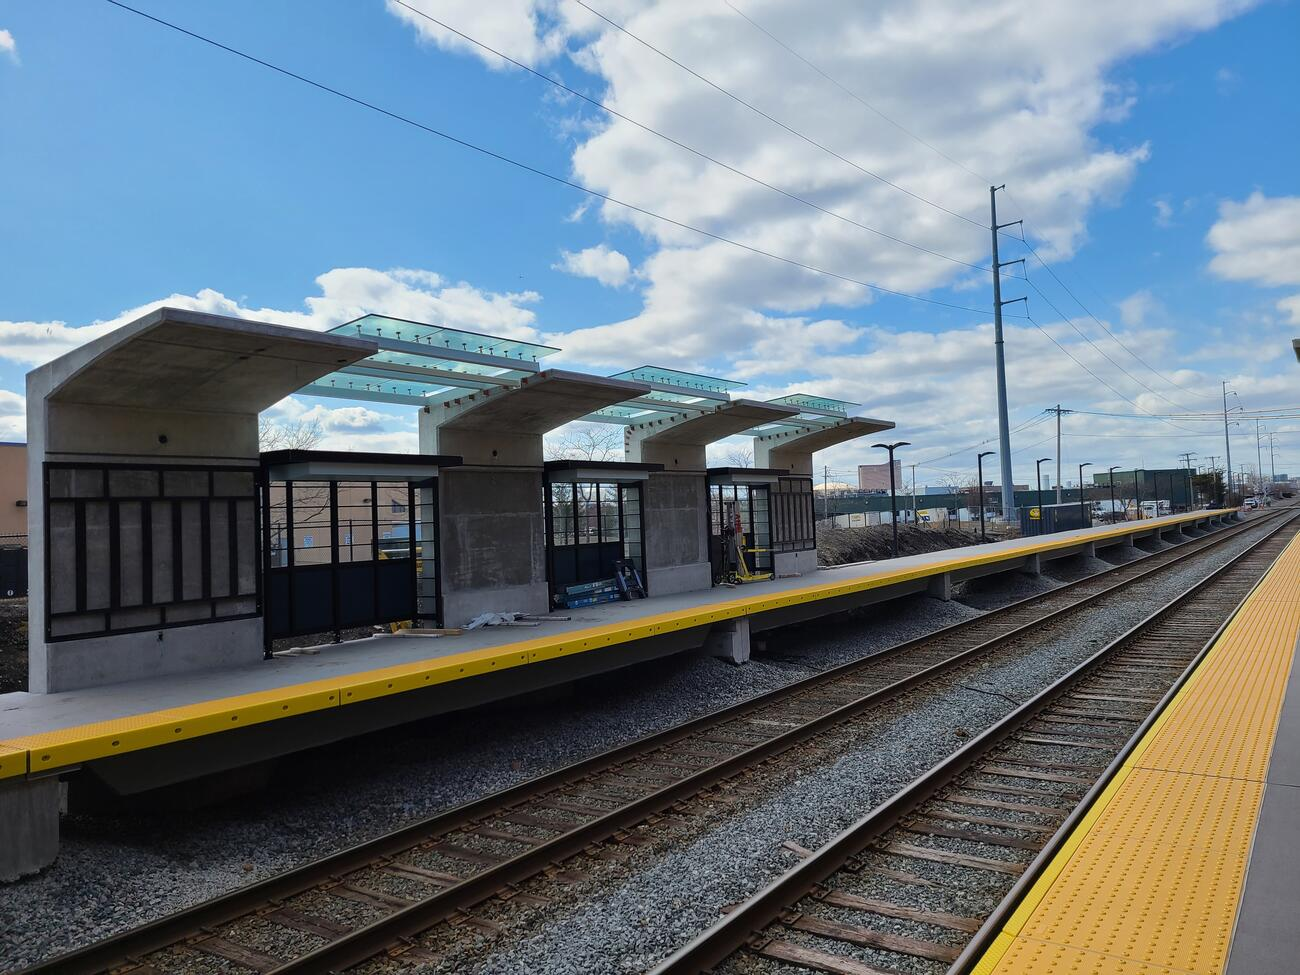 Canopies are installed on the west end of the outbound platform for the new Chelsea Commuter Rail Station